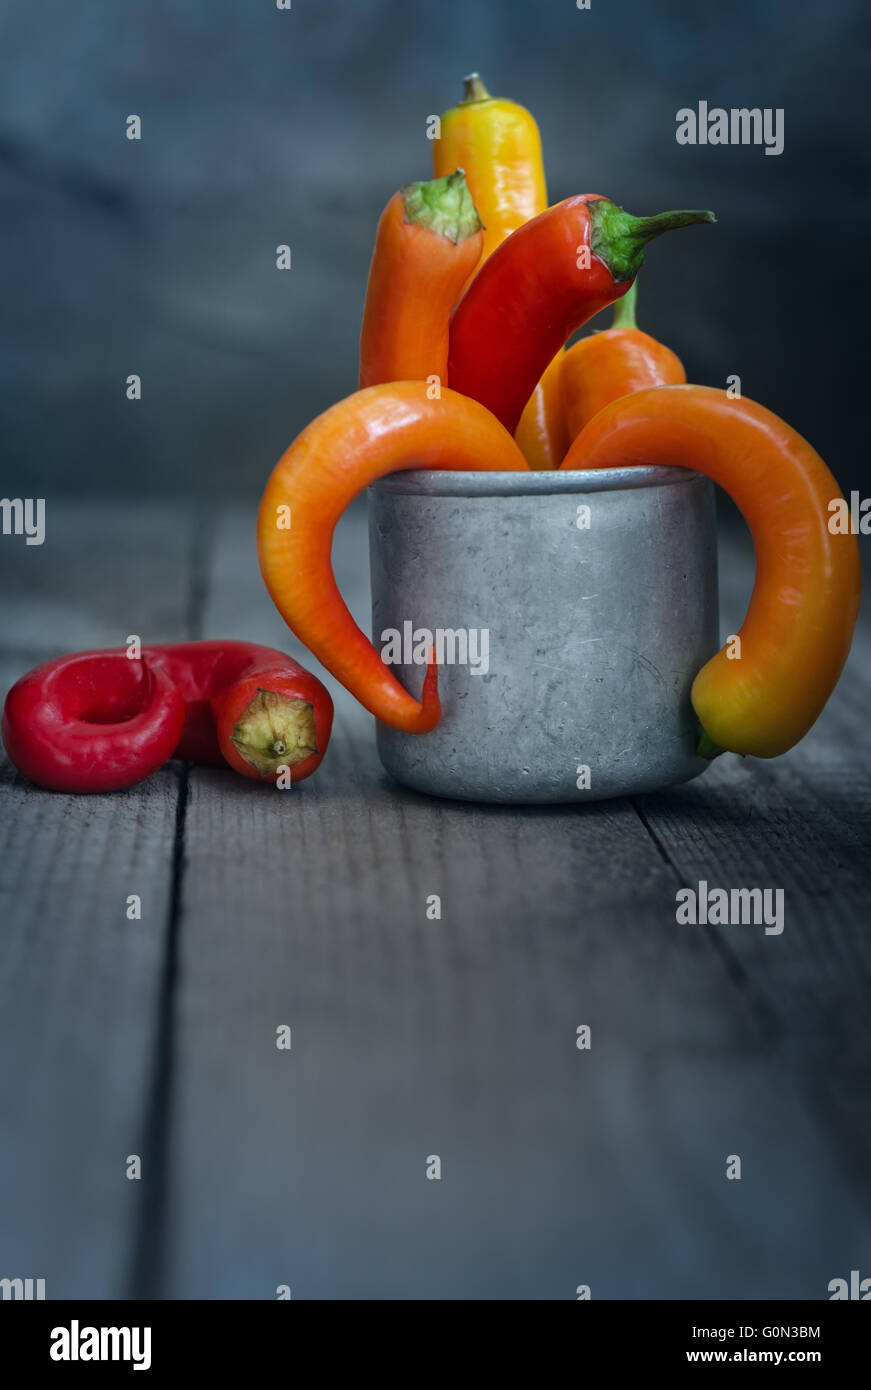 Chili pepper in a Cup on the table Stock Photo